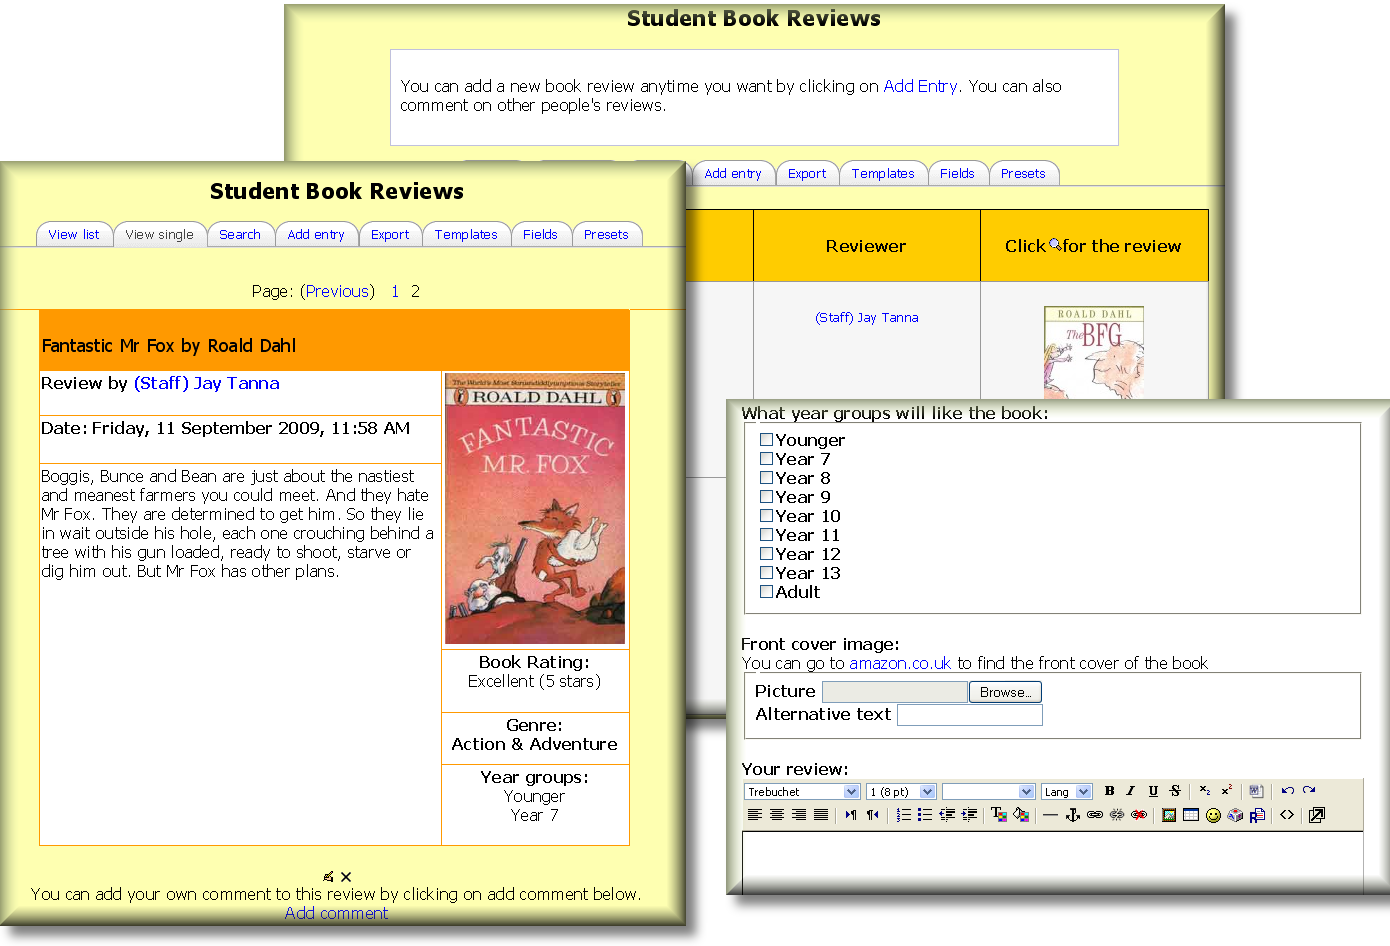 Student_Book_Reviews